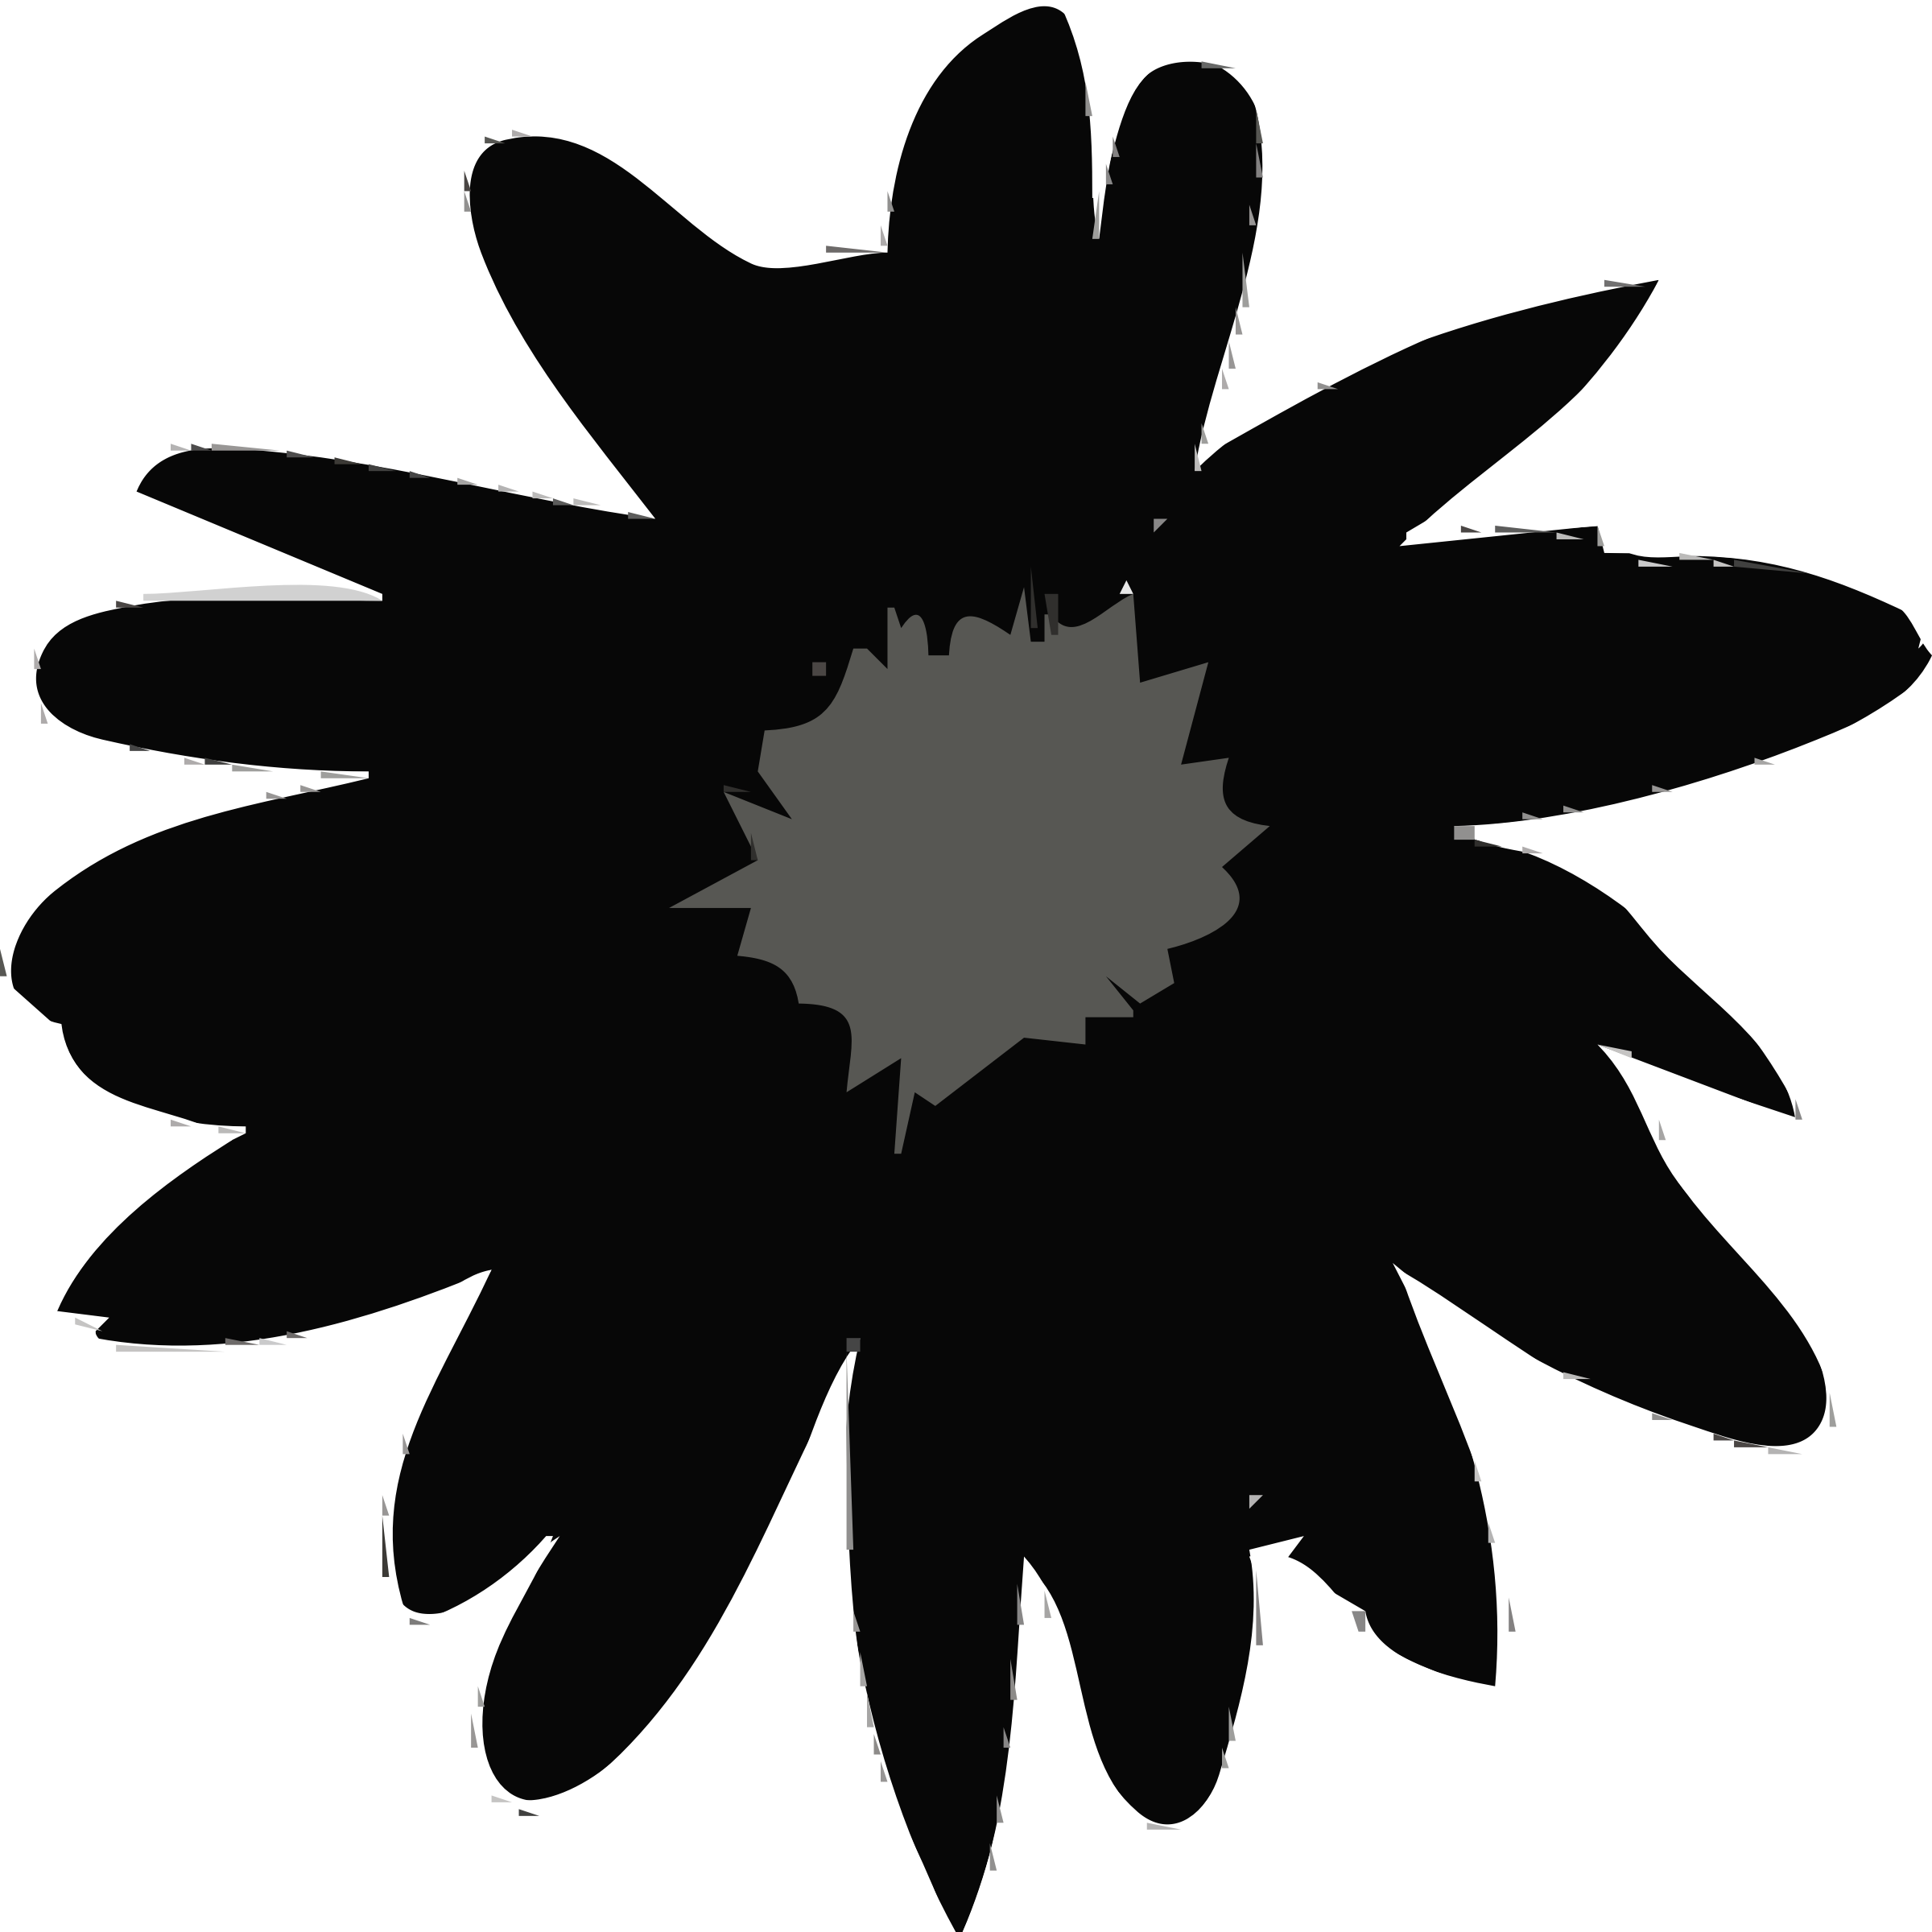 2400x2400 Ireland Daisy Silhouette Icons Png